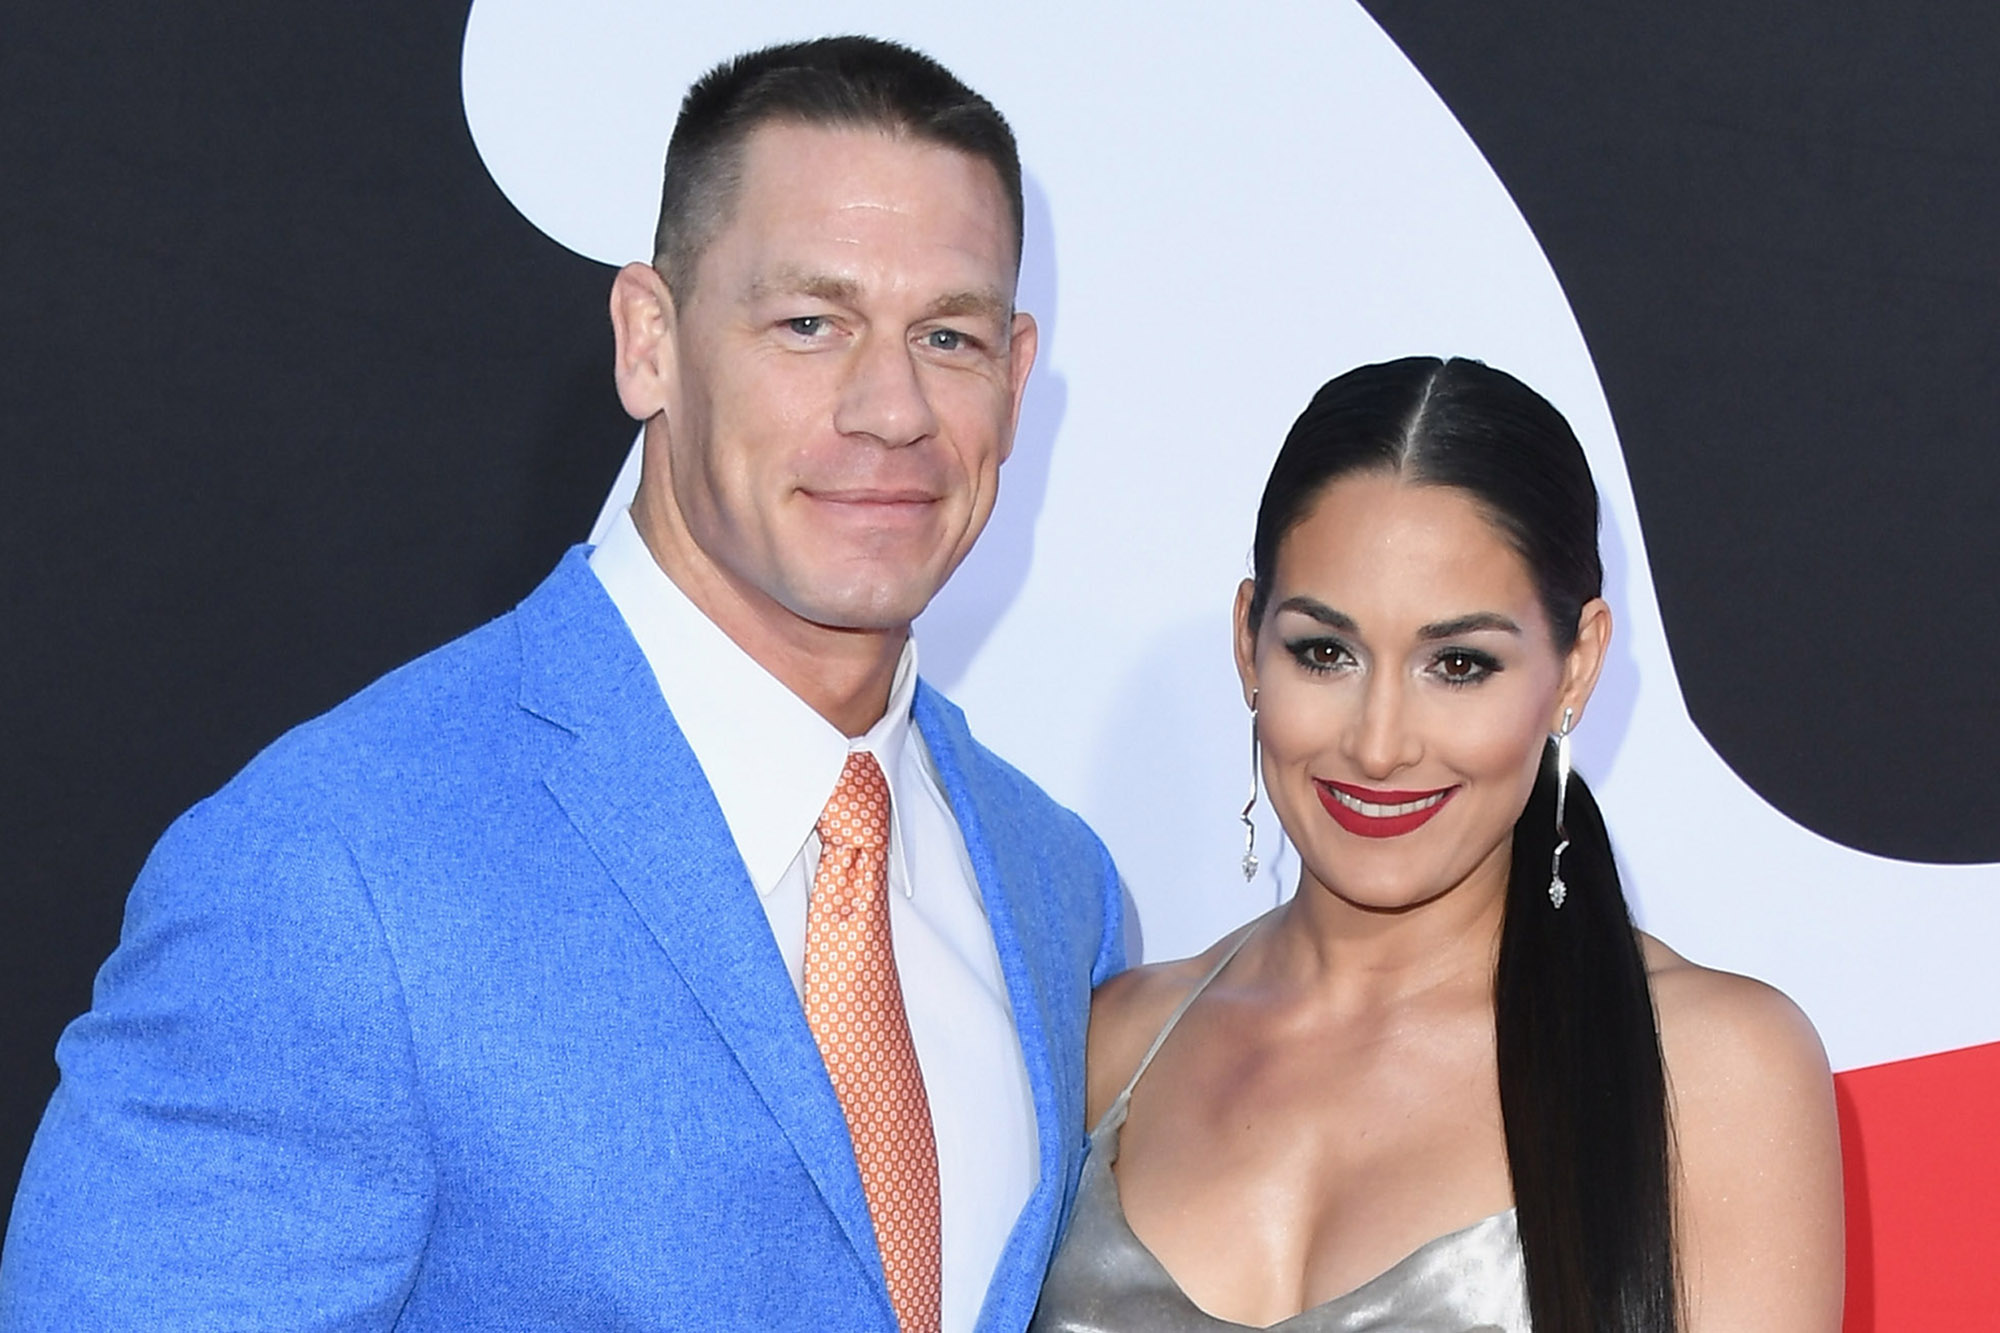 WWE Talking To Bella Twins About In-Ring Return